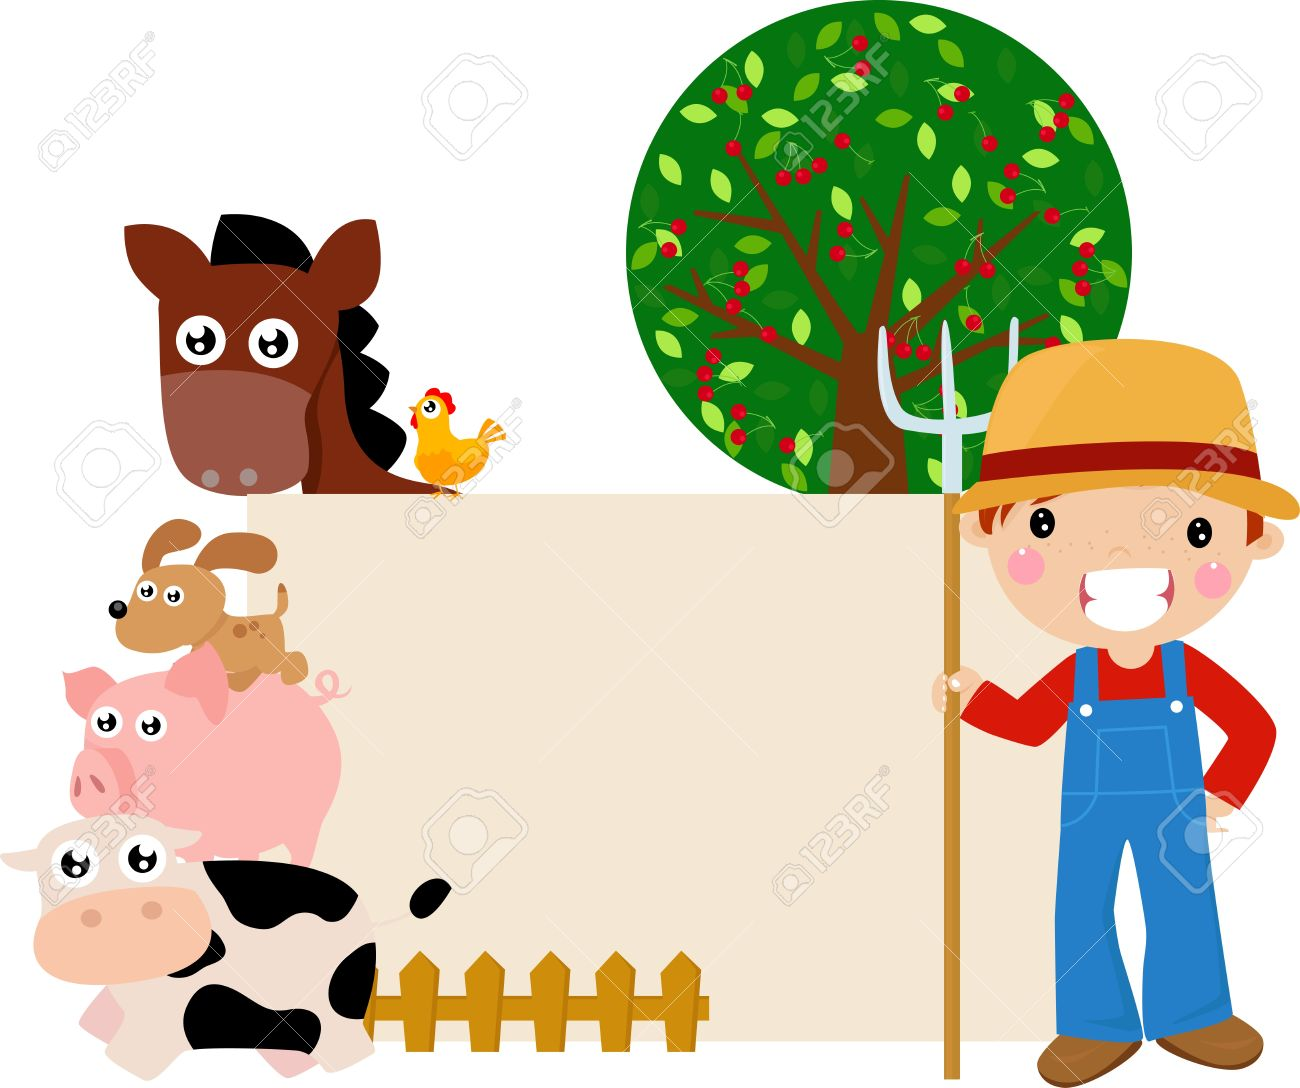 Farm Frame Royalty Free Cliparts, Vectors, And Stock Illustration ...